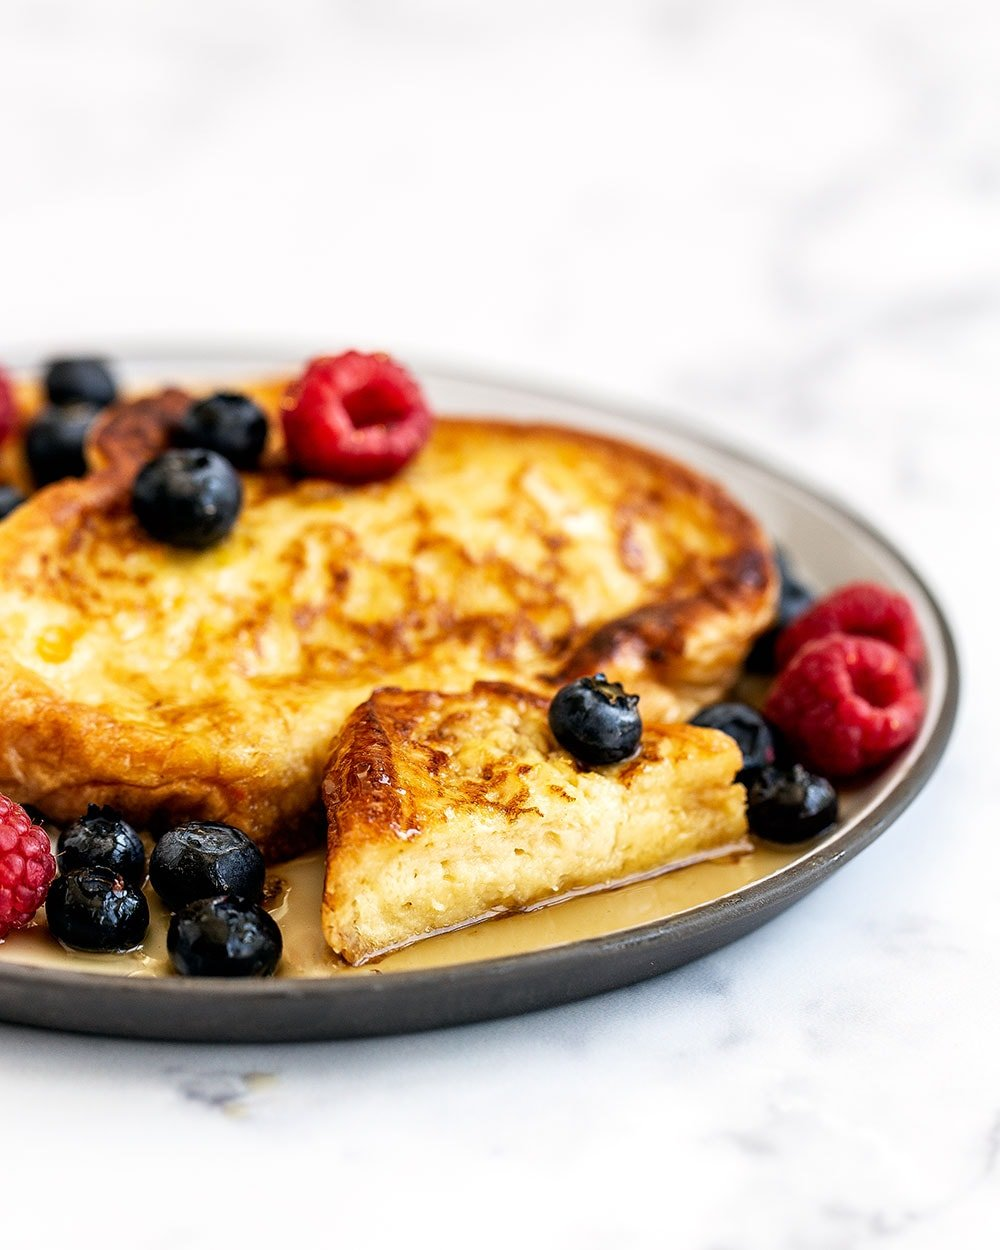 Bite of fluffy French toast made with Challah bread on a plate with syrup and fruit